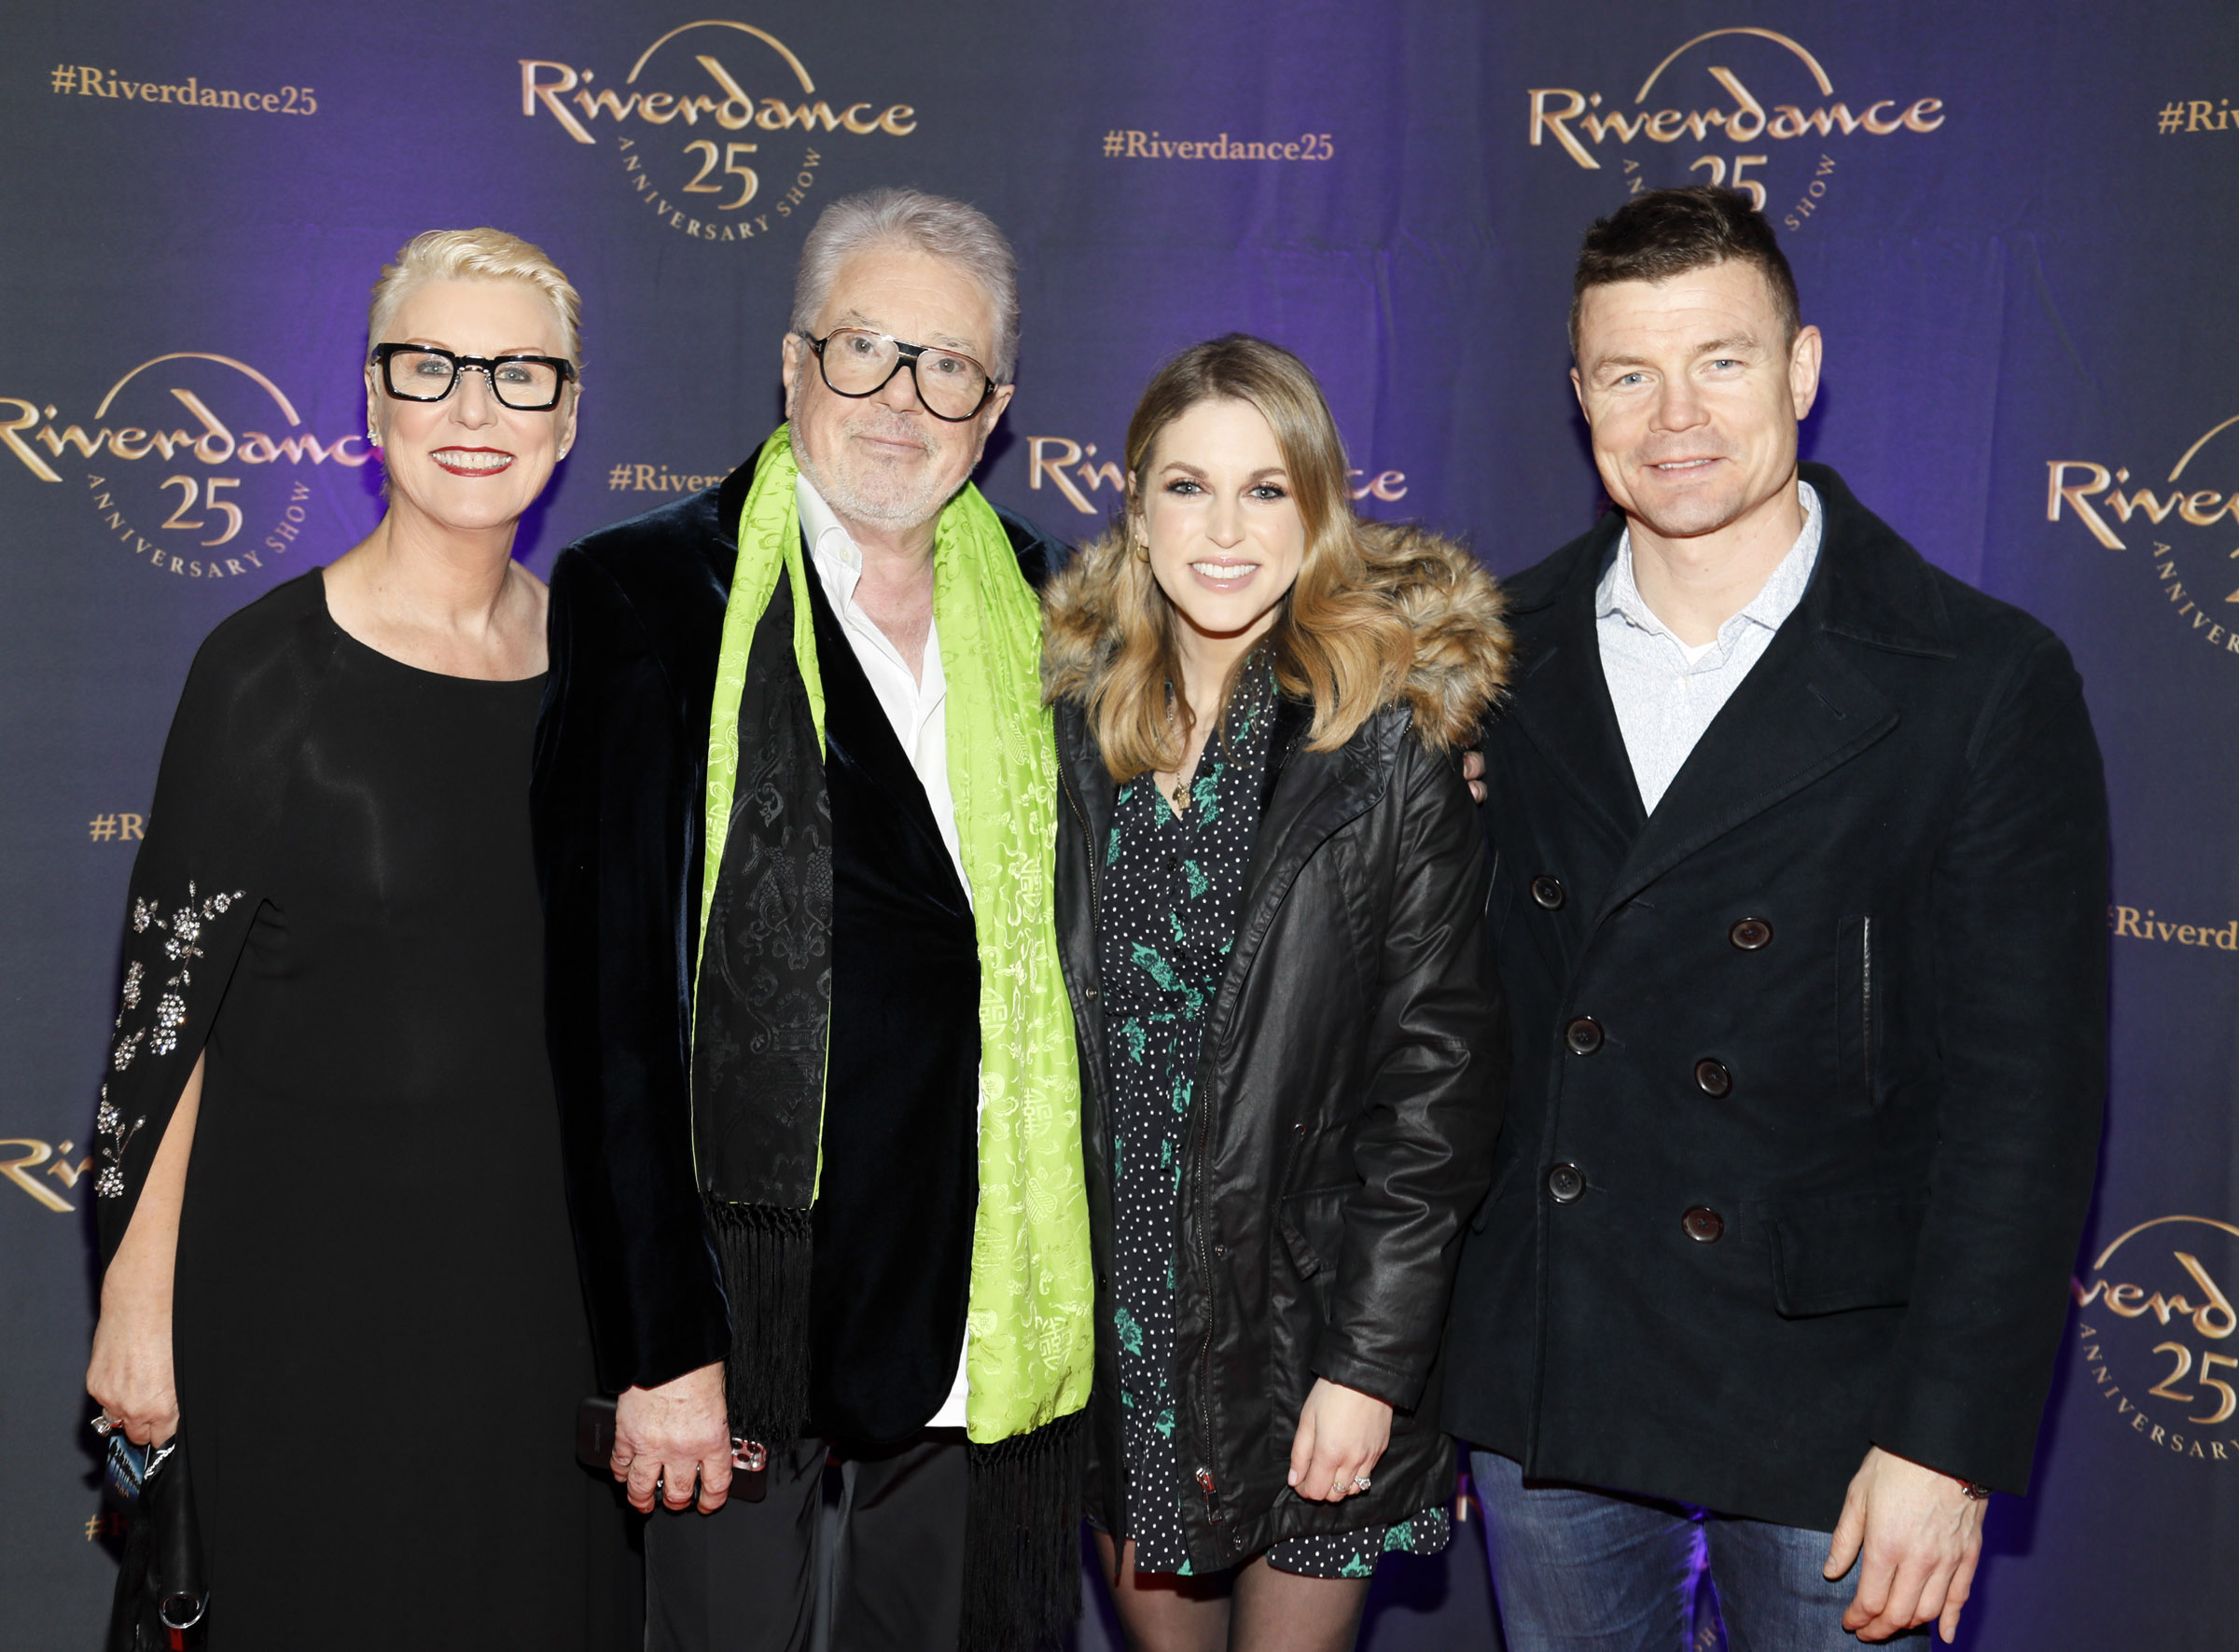 Moya Doherty, John McColgan, Amy Huberman and Brian O'Driscoll at the historic gala performance of Riverdance 25th Anniversary show at 3Arena Dublin exactly 25 years to the day that Riverdance was first performed at the Point Depot.  Photo: Kieran Harnett